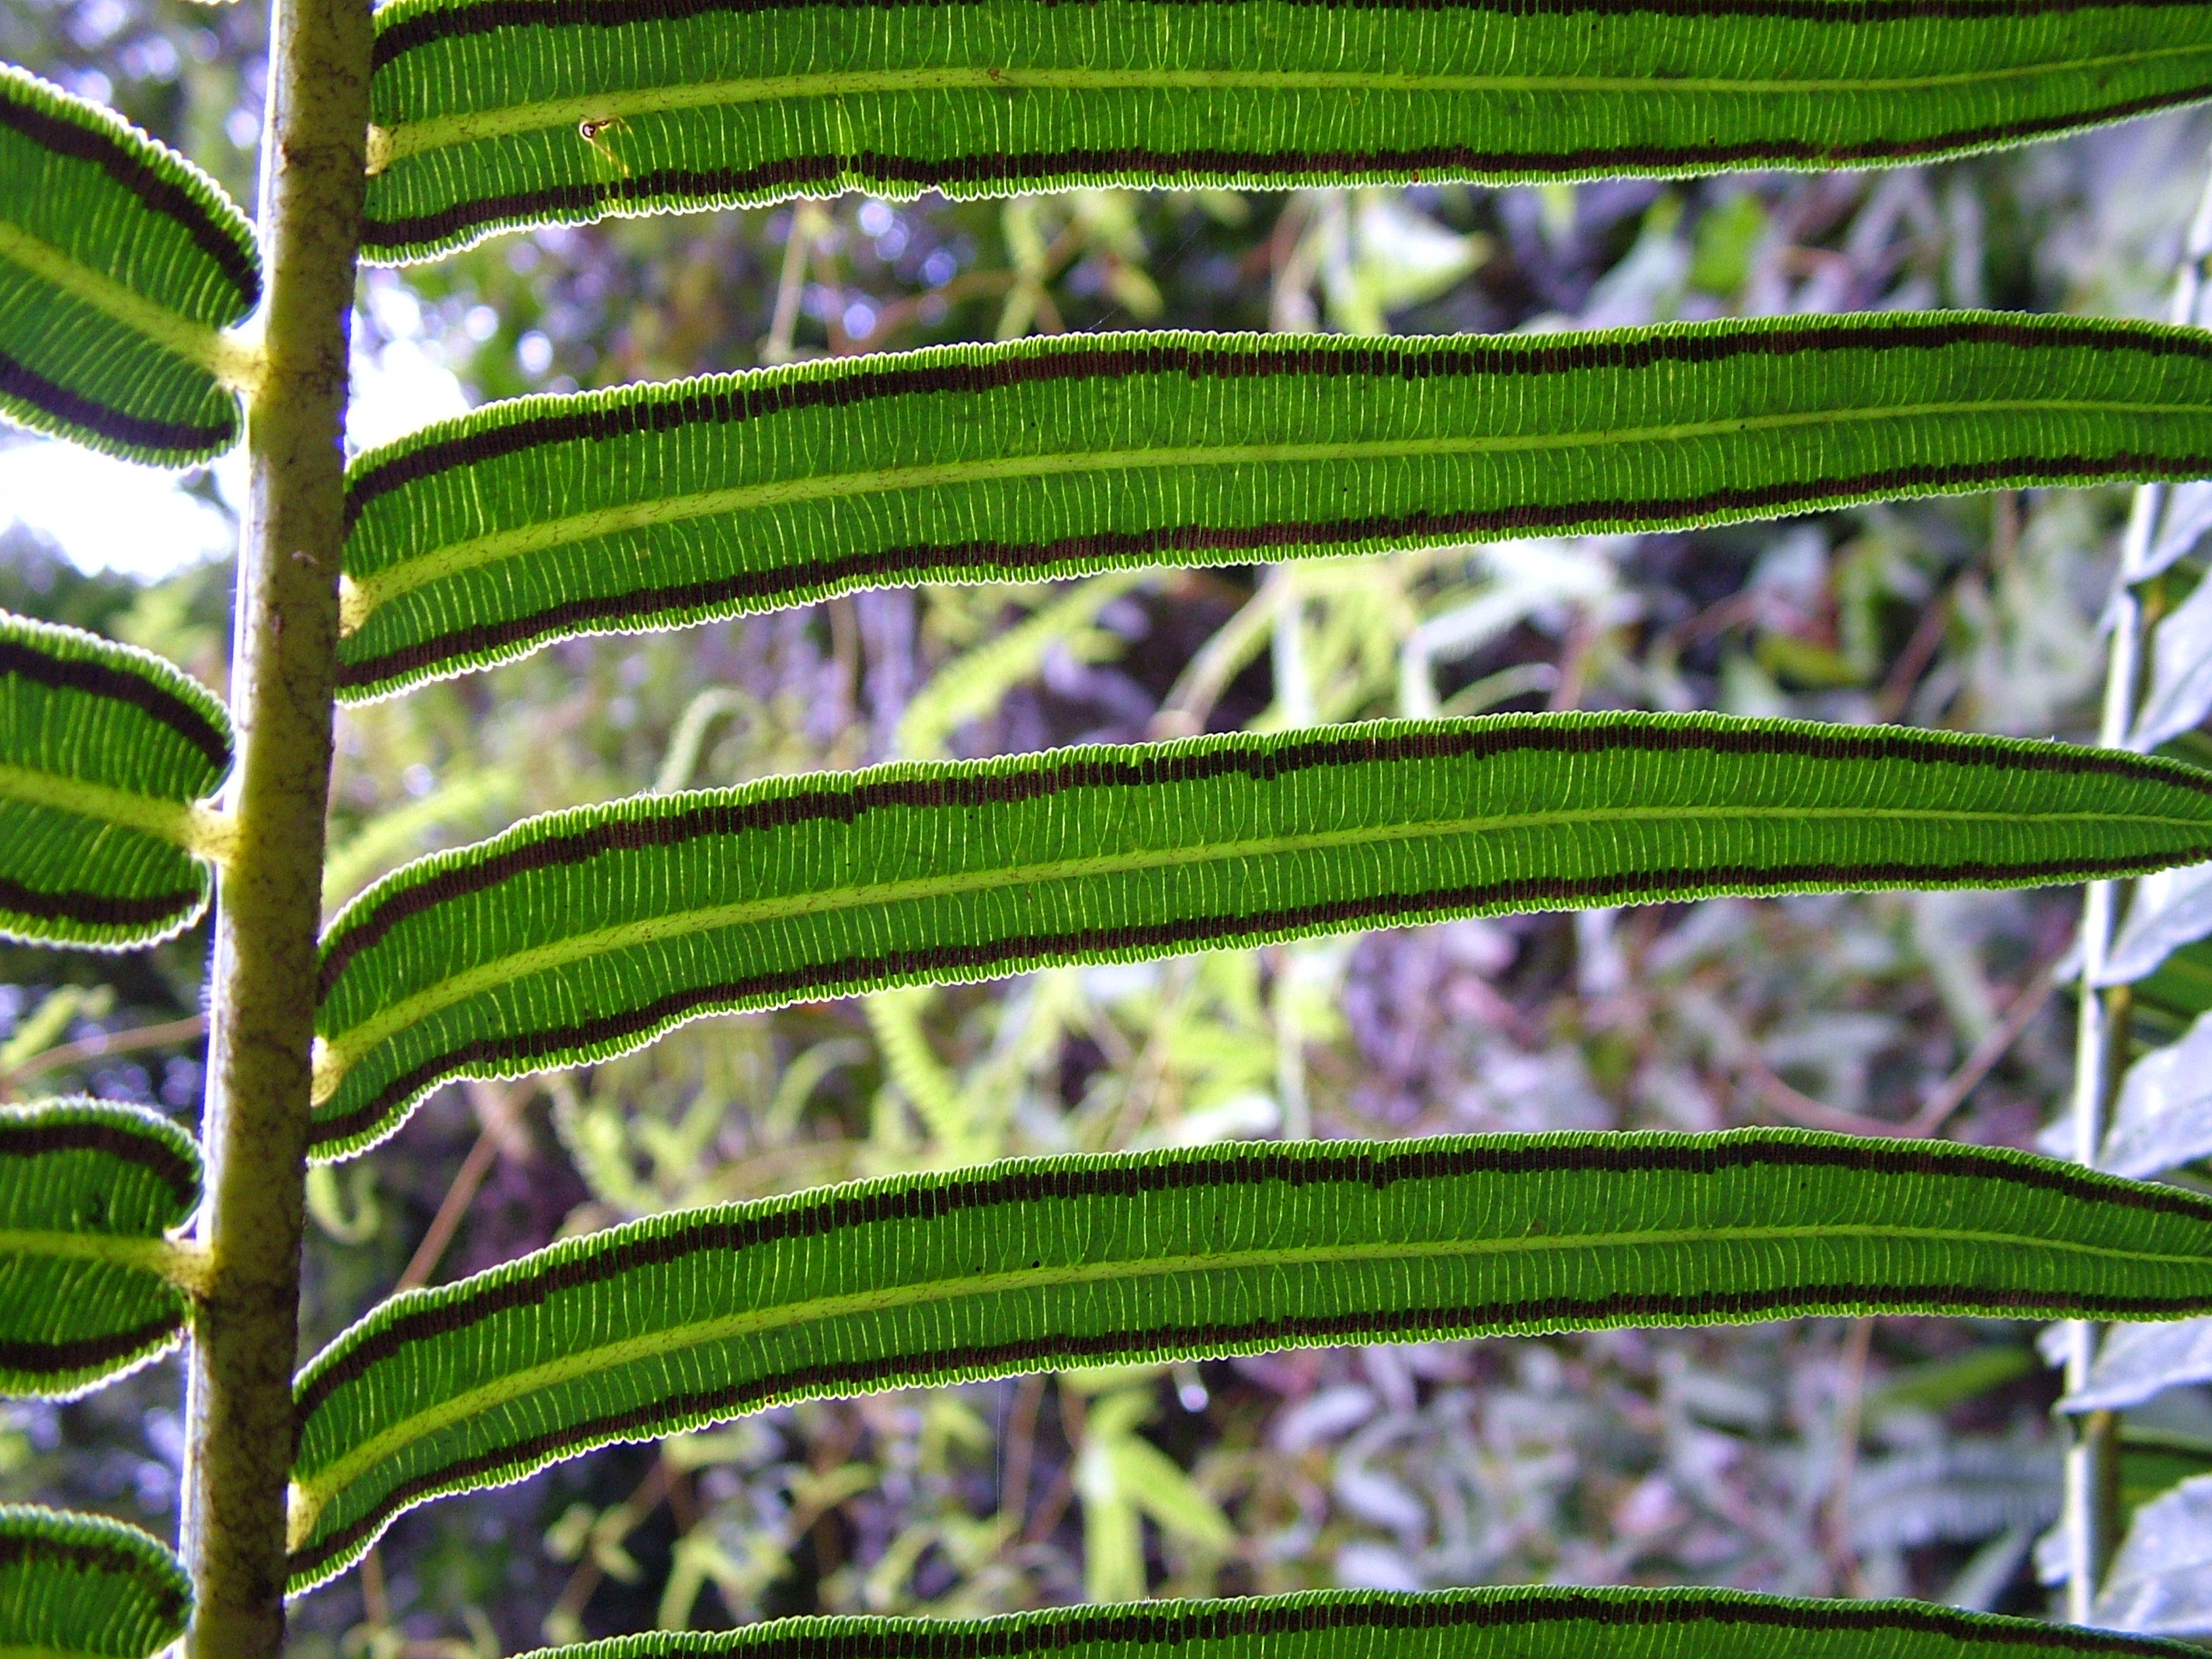 Image of Oriental vessel fern